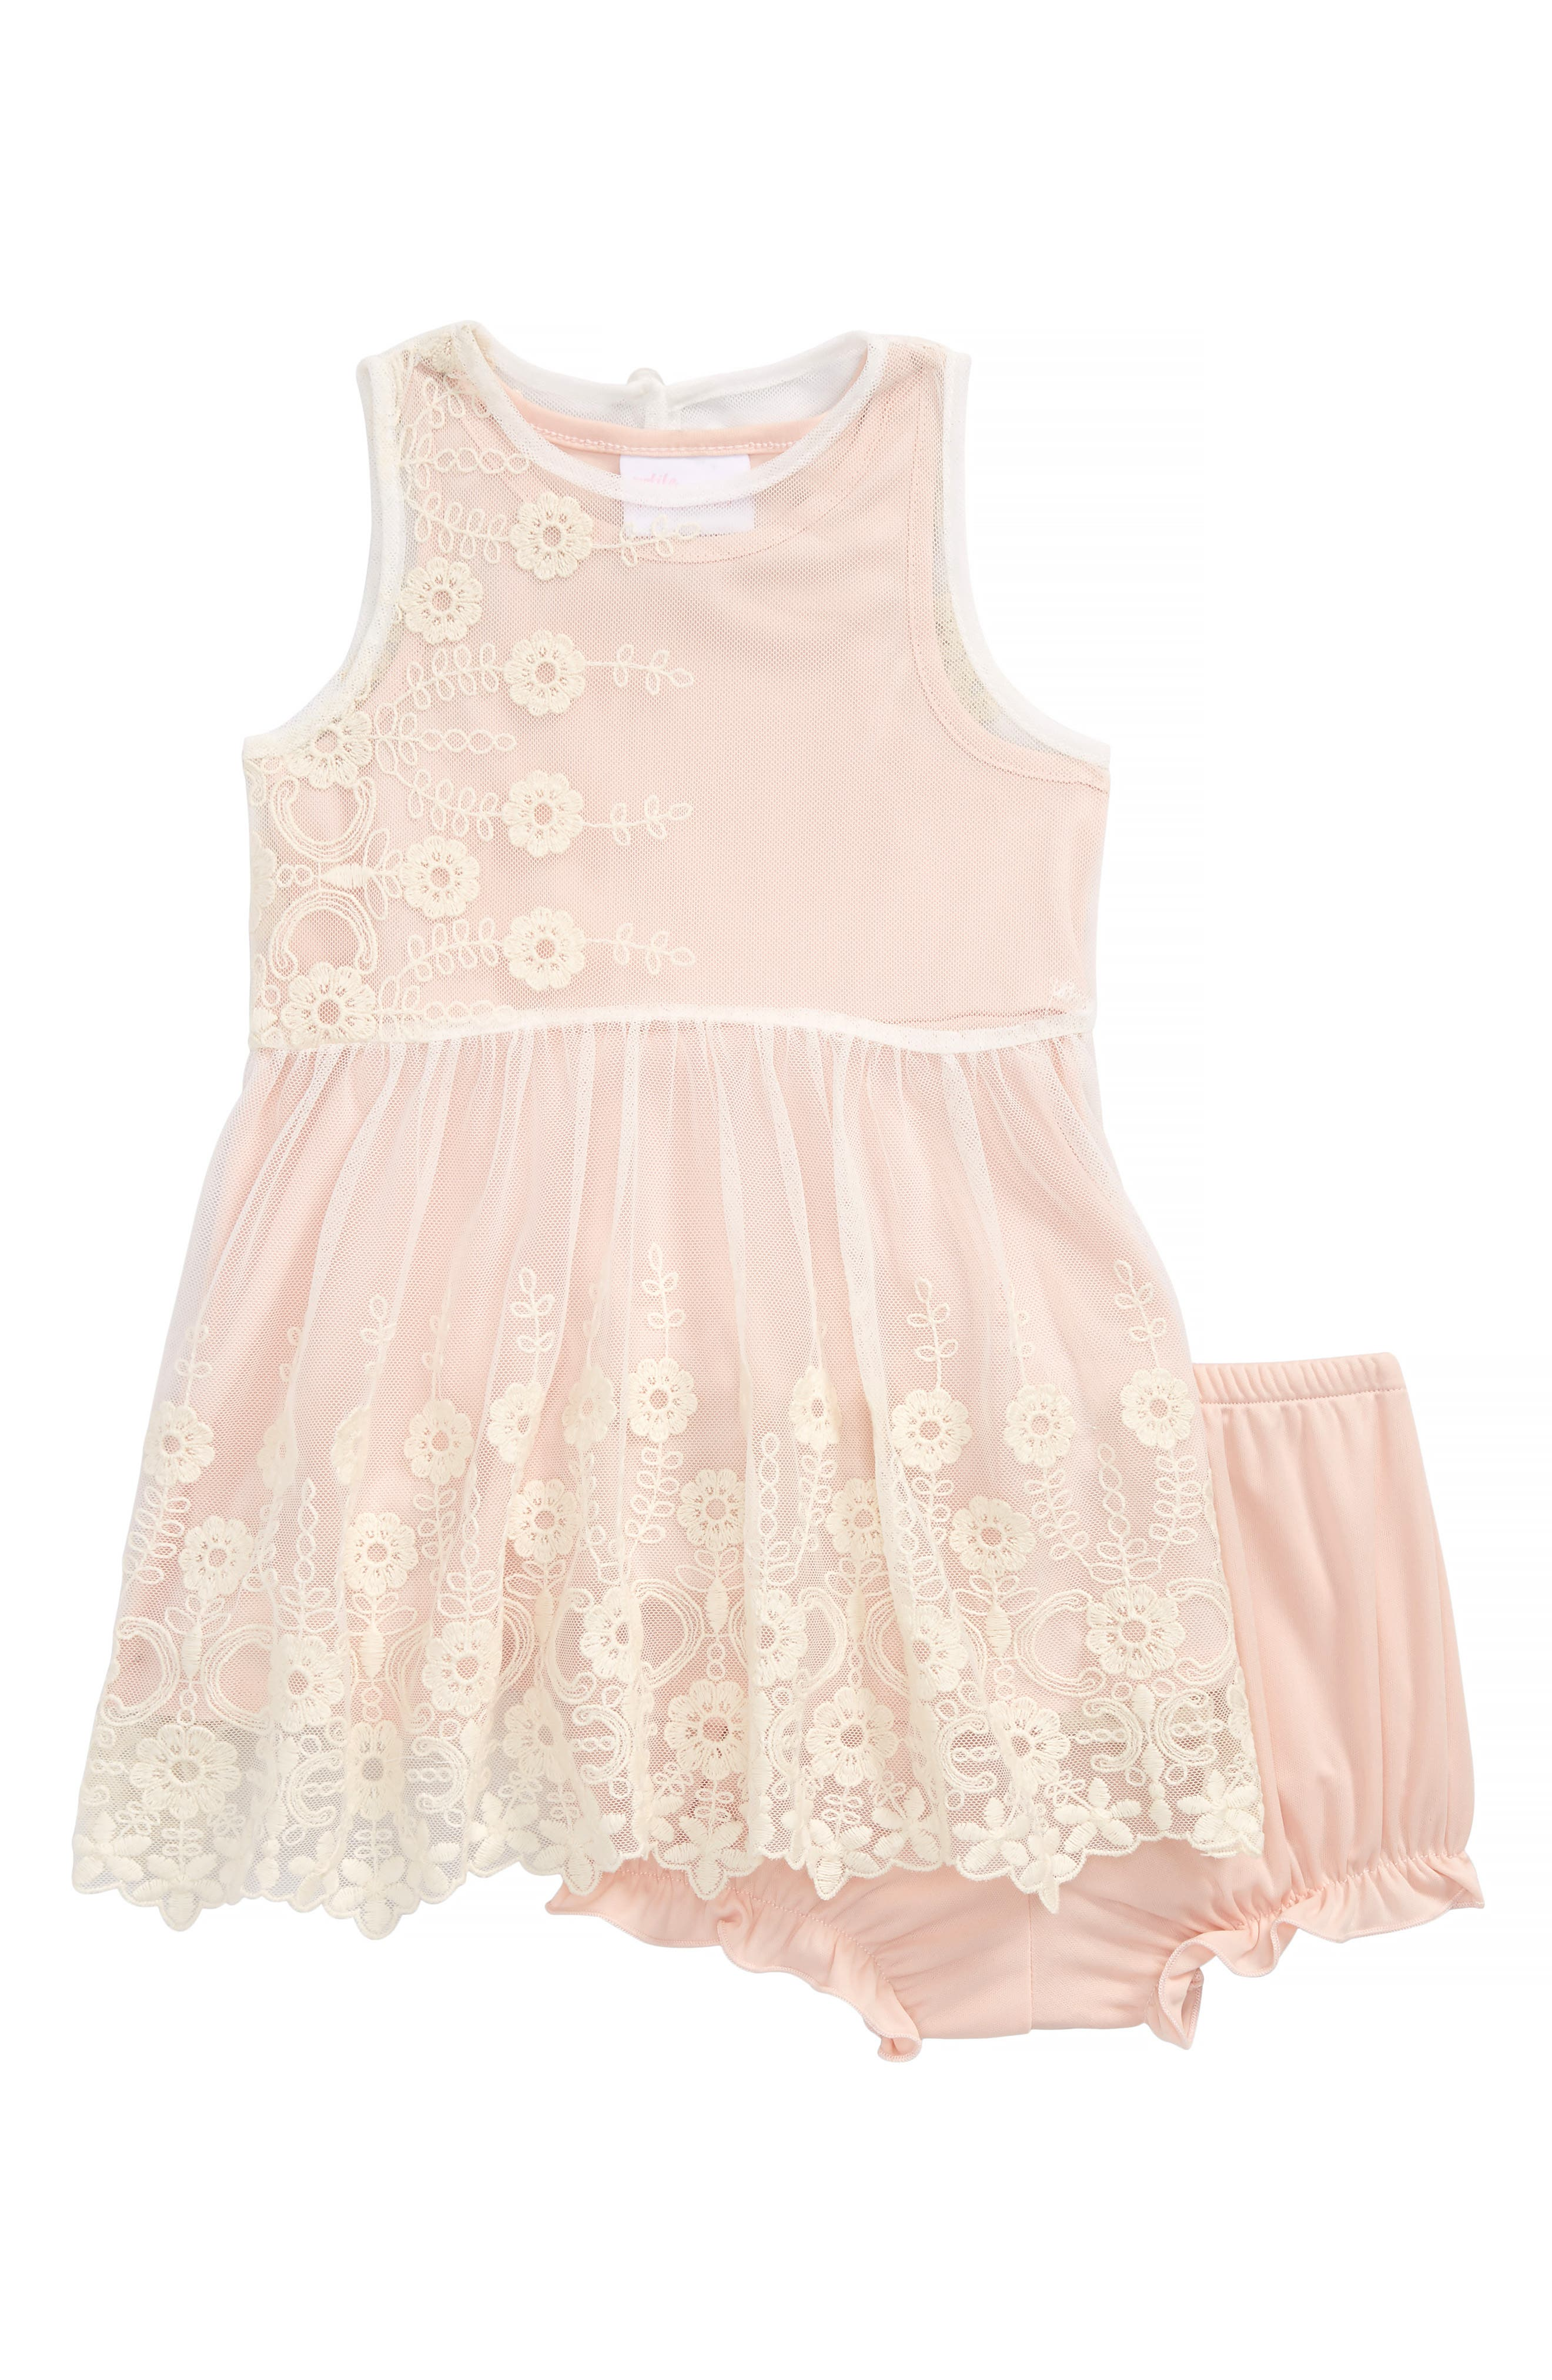 Flower Embroidered Sleeveless Dress,                             Main thumbnail 1, color,                             Ivory / Pink